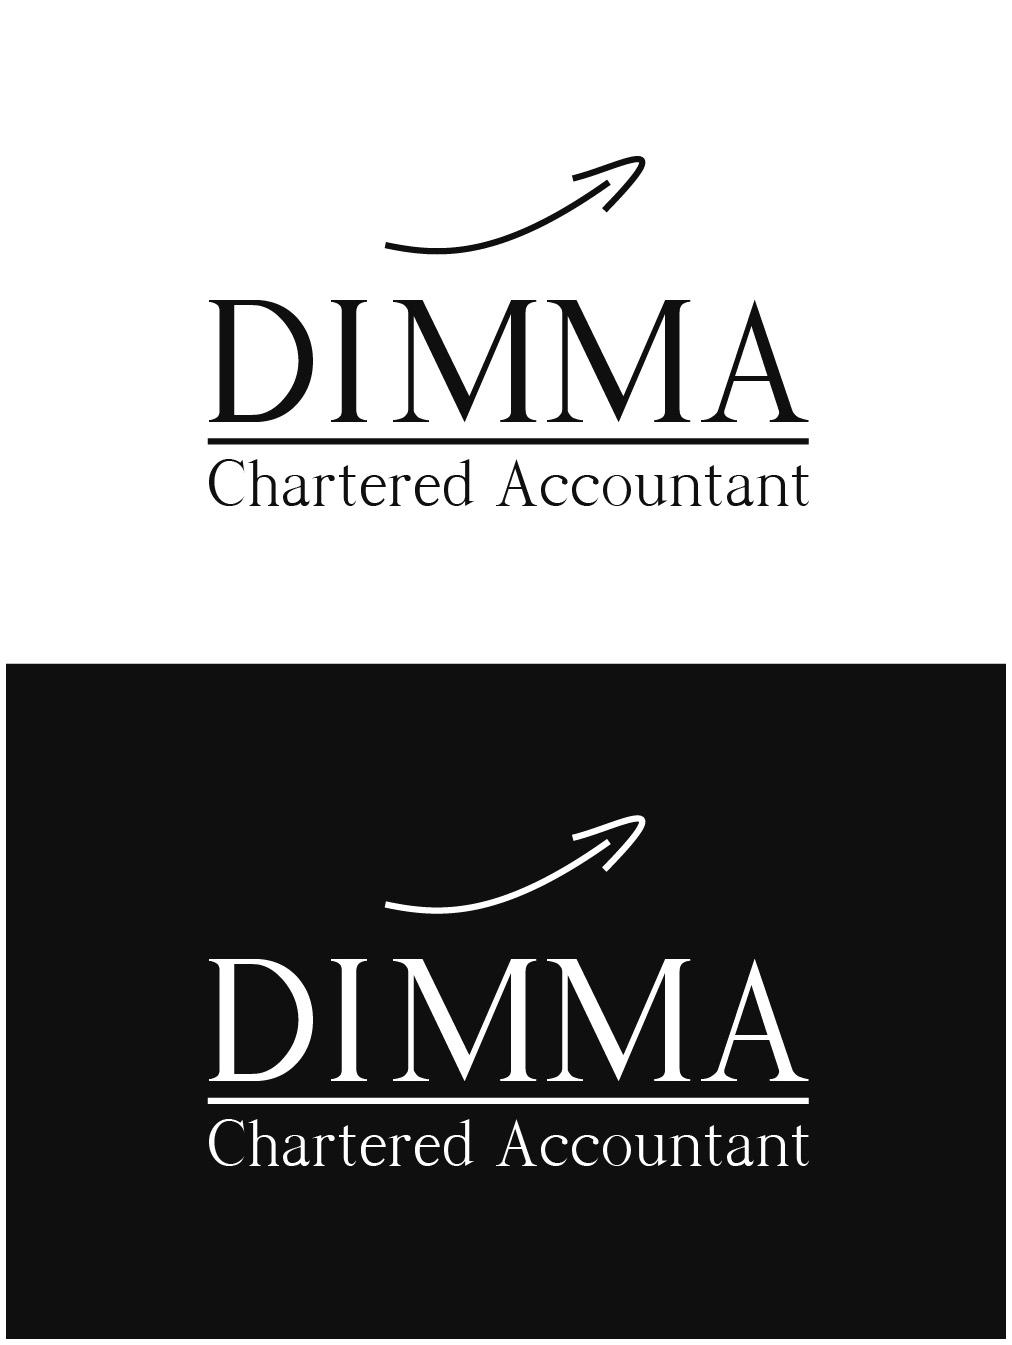 Logo Design by gkonta - Entry No. 34 in the Logo Design Contest Creative Logo Design for Dimma Chartered Accountant.